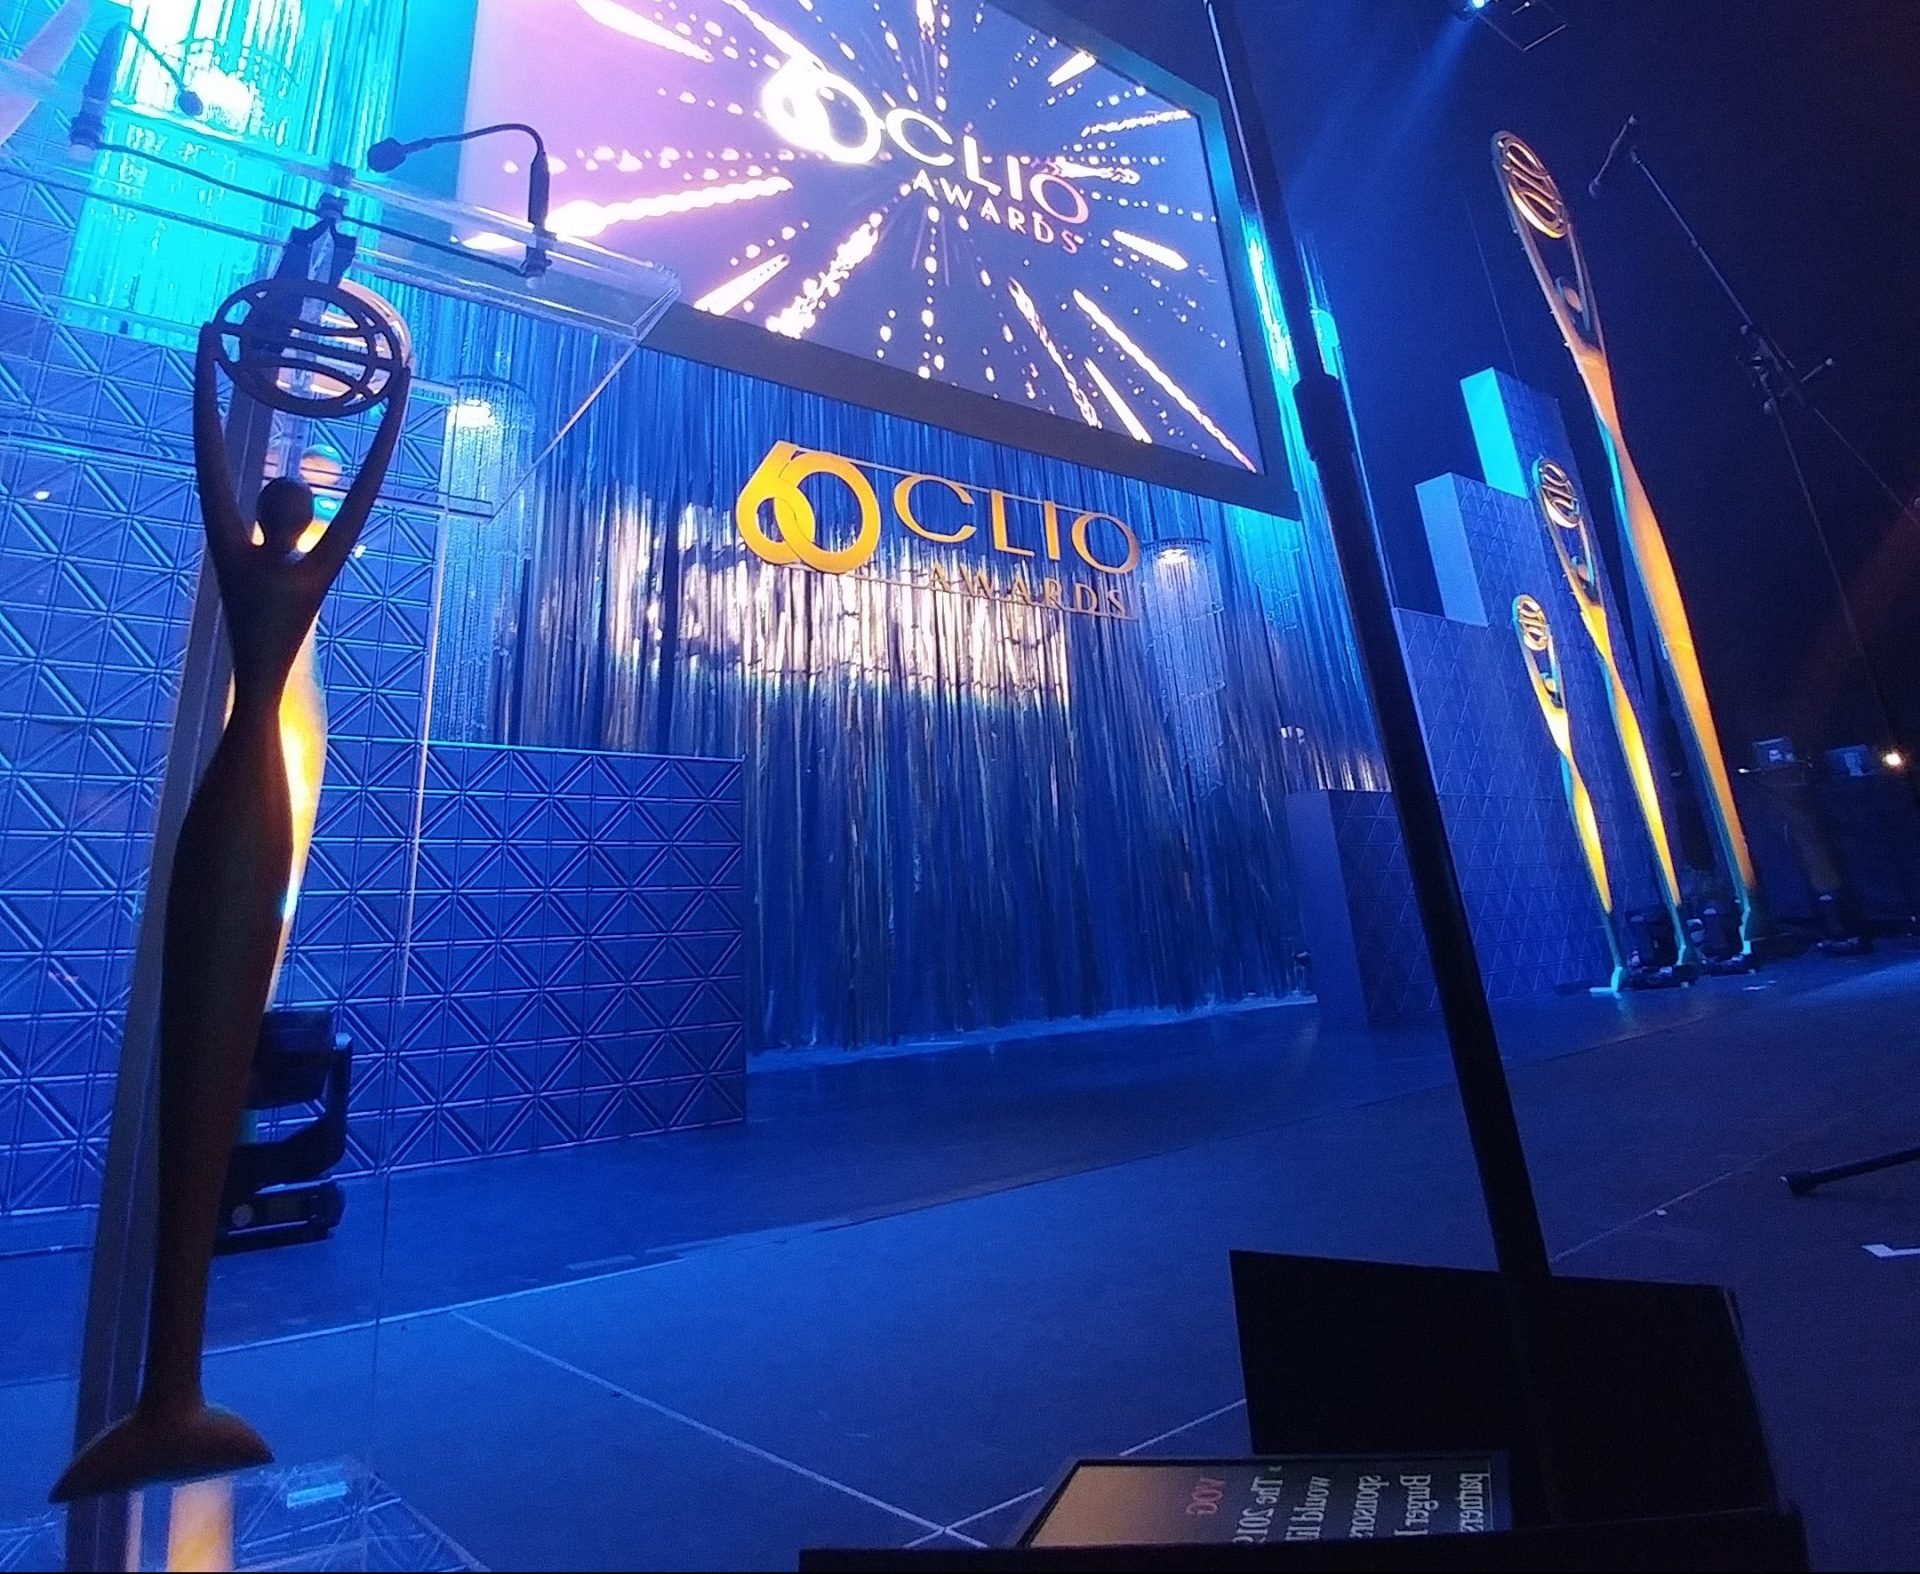 Weber Shandwick Has Strongest Year Ever at 2019 Clio Awards